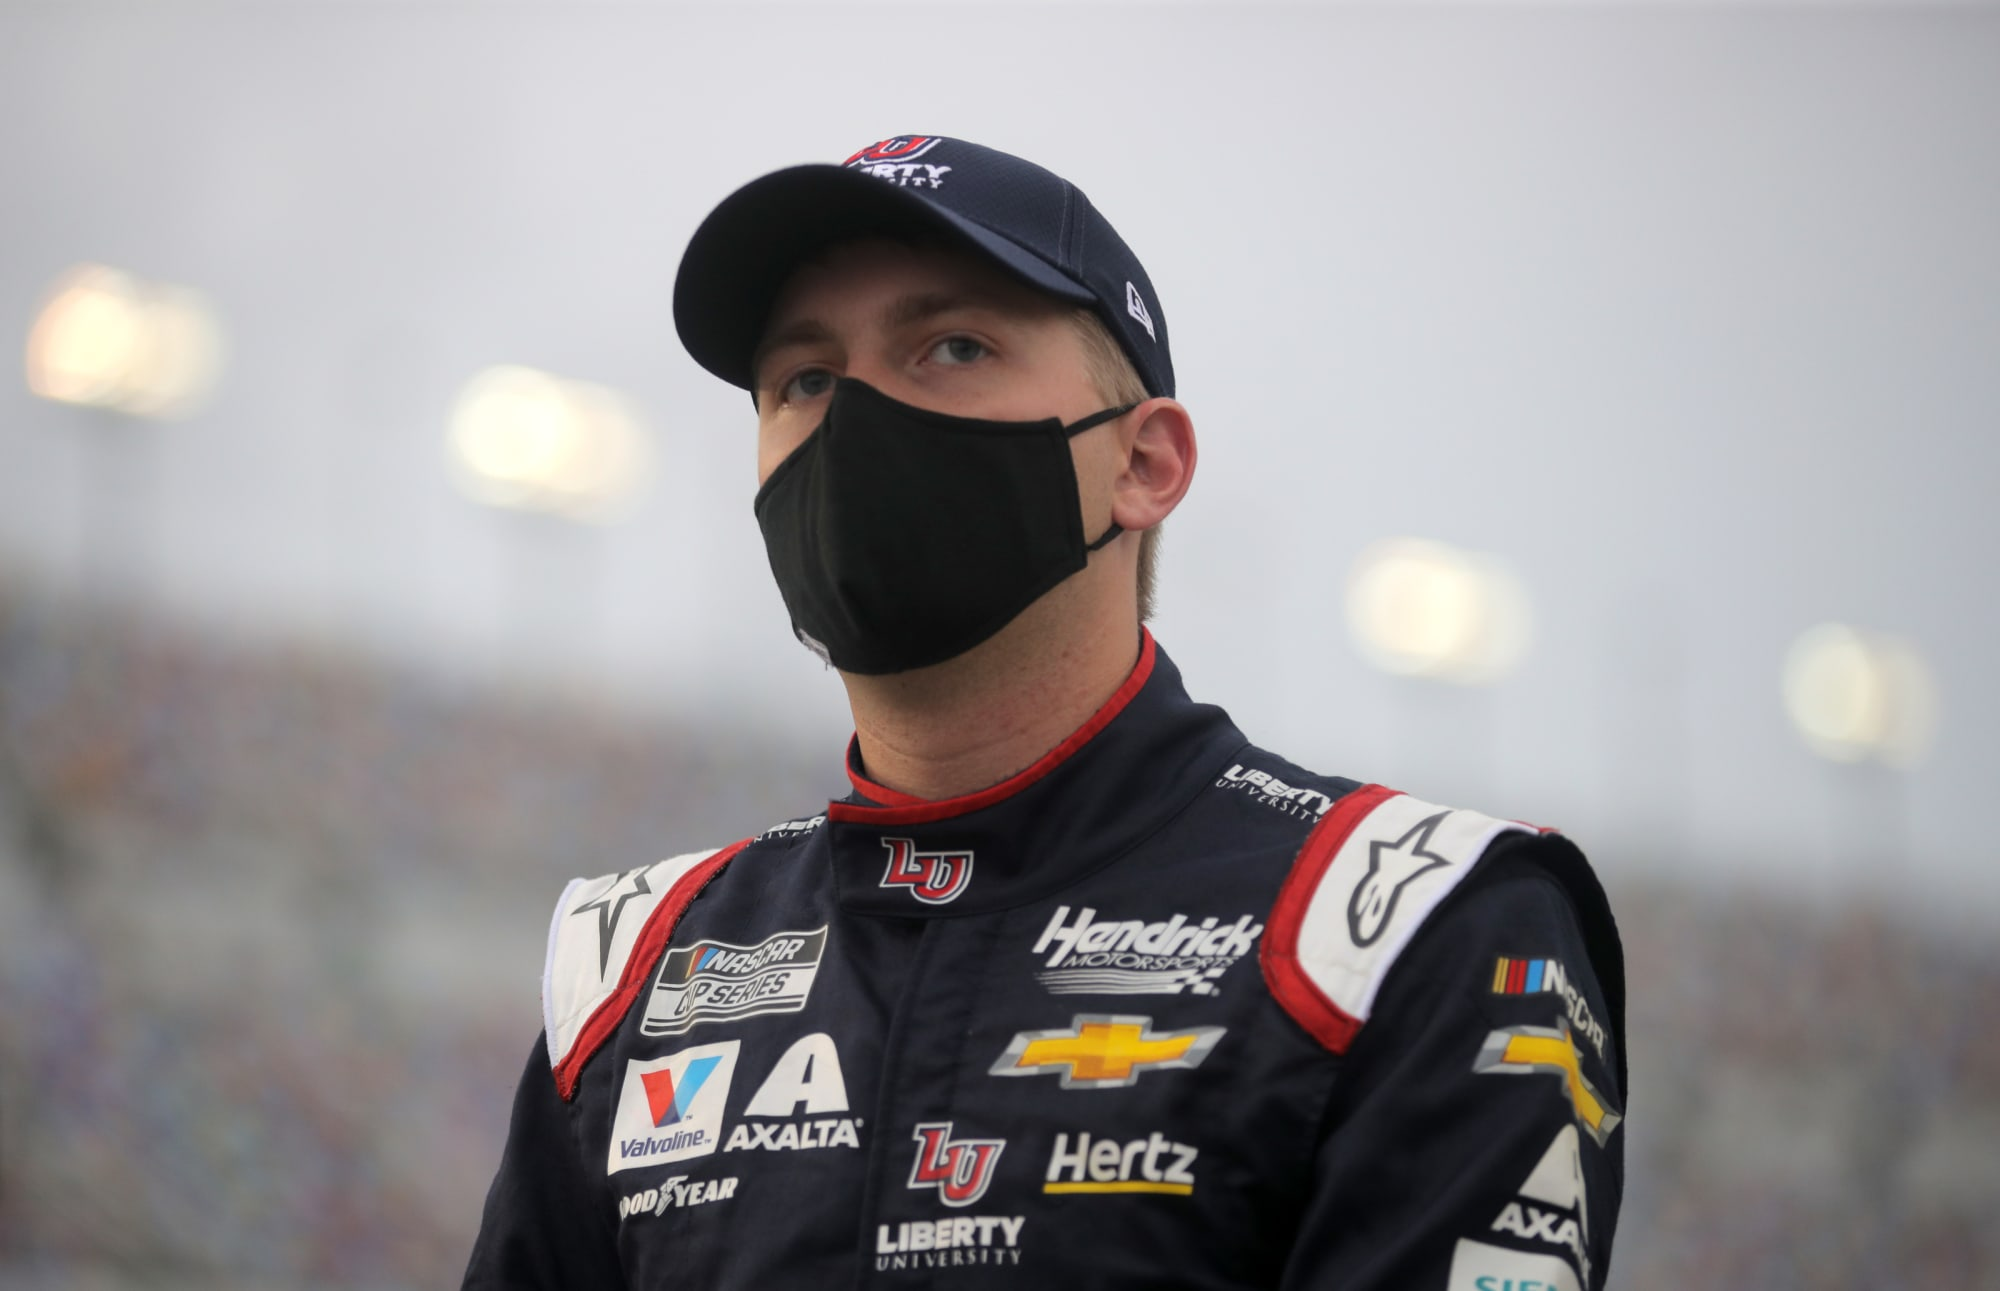 NASCAR: William Byron's deal was done quite a while ago